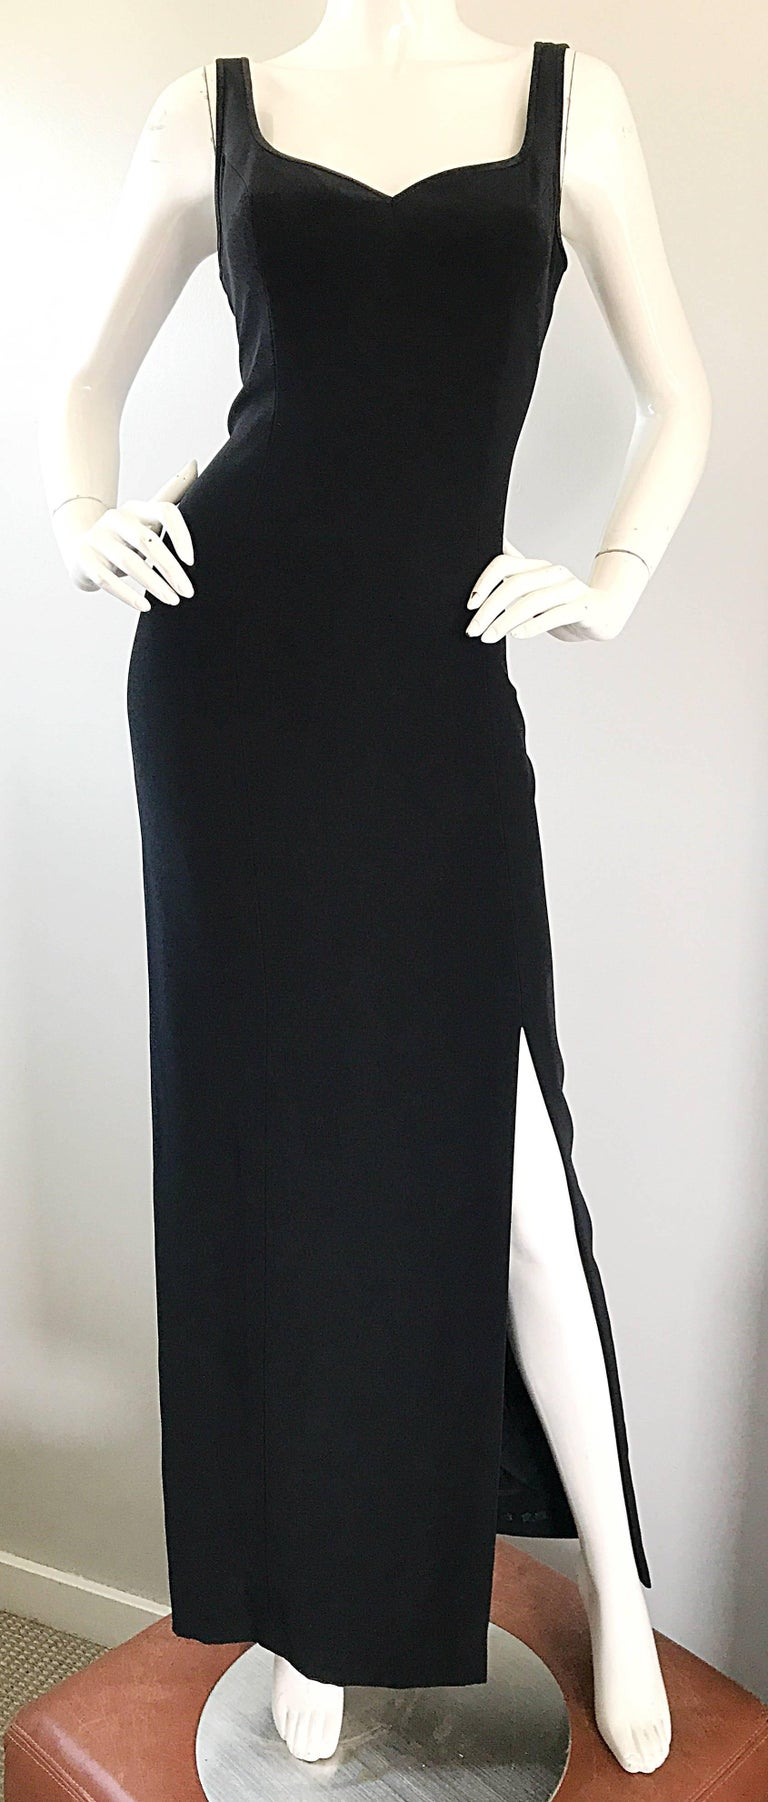 1990s Bob Mackie Size 10 Black Crepe Sexy 90s Vintage High Slit Evening Gown  For Sale 3